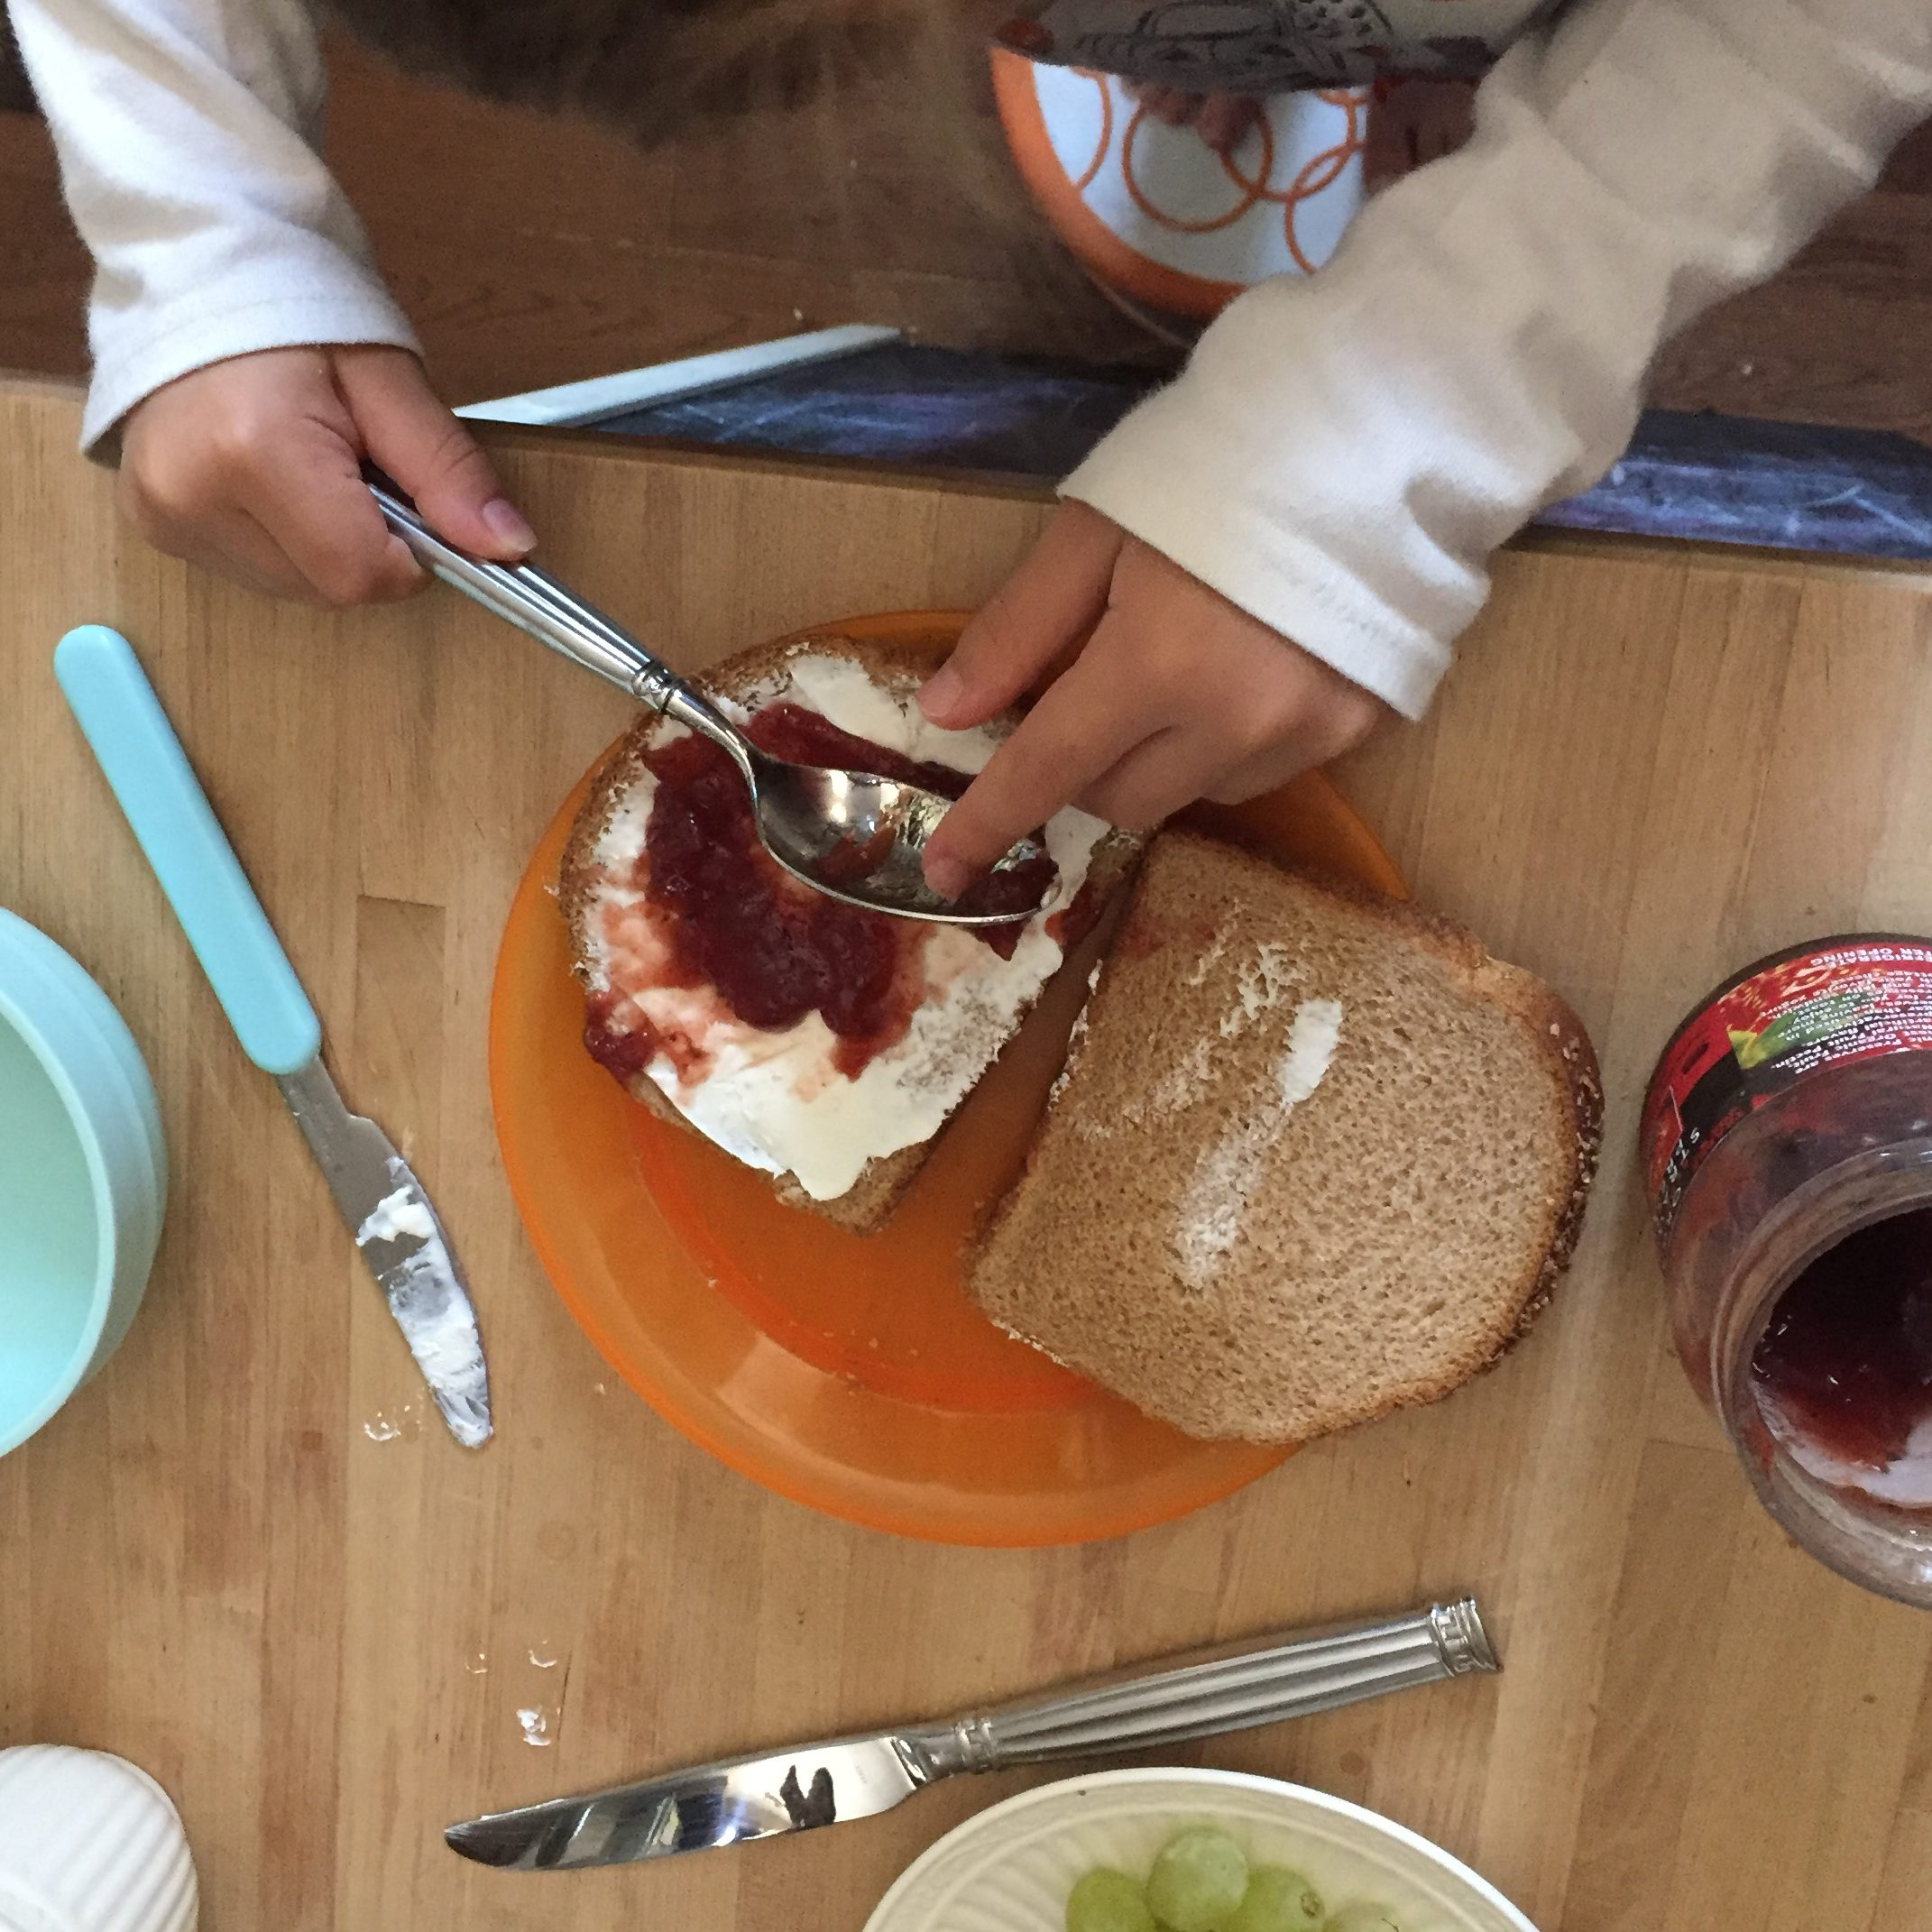 Kids Can Make Sandwiches